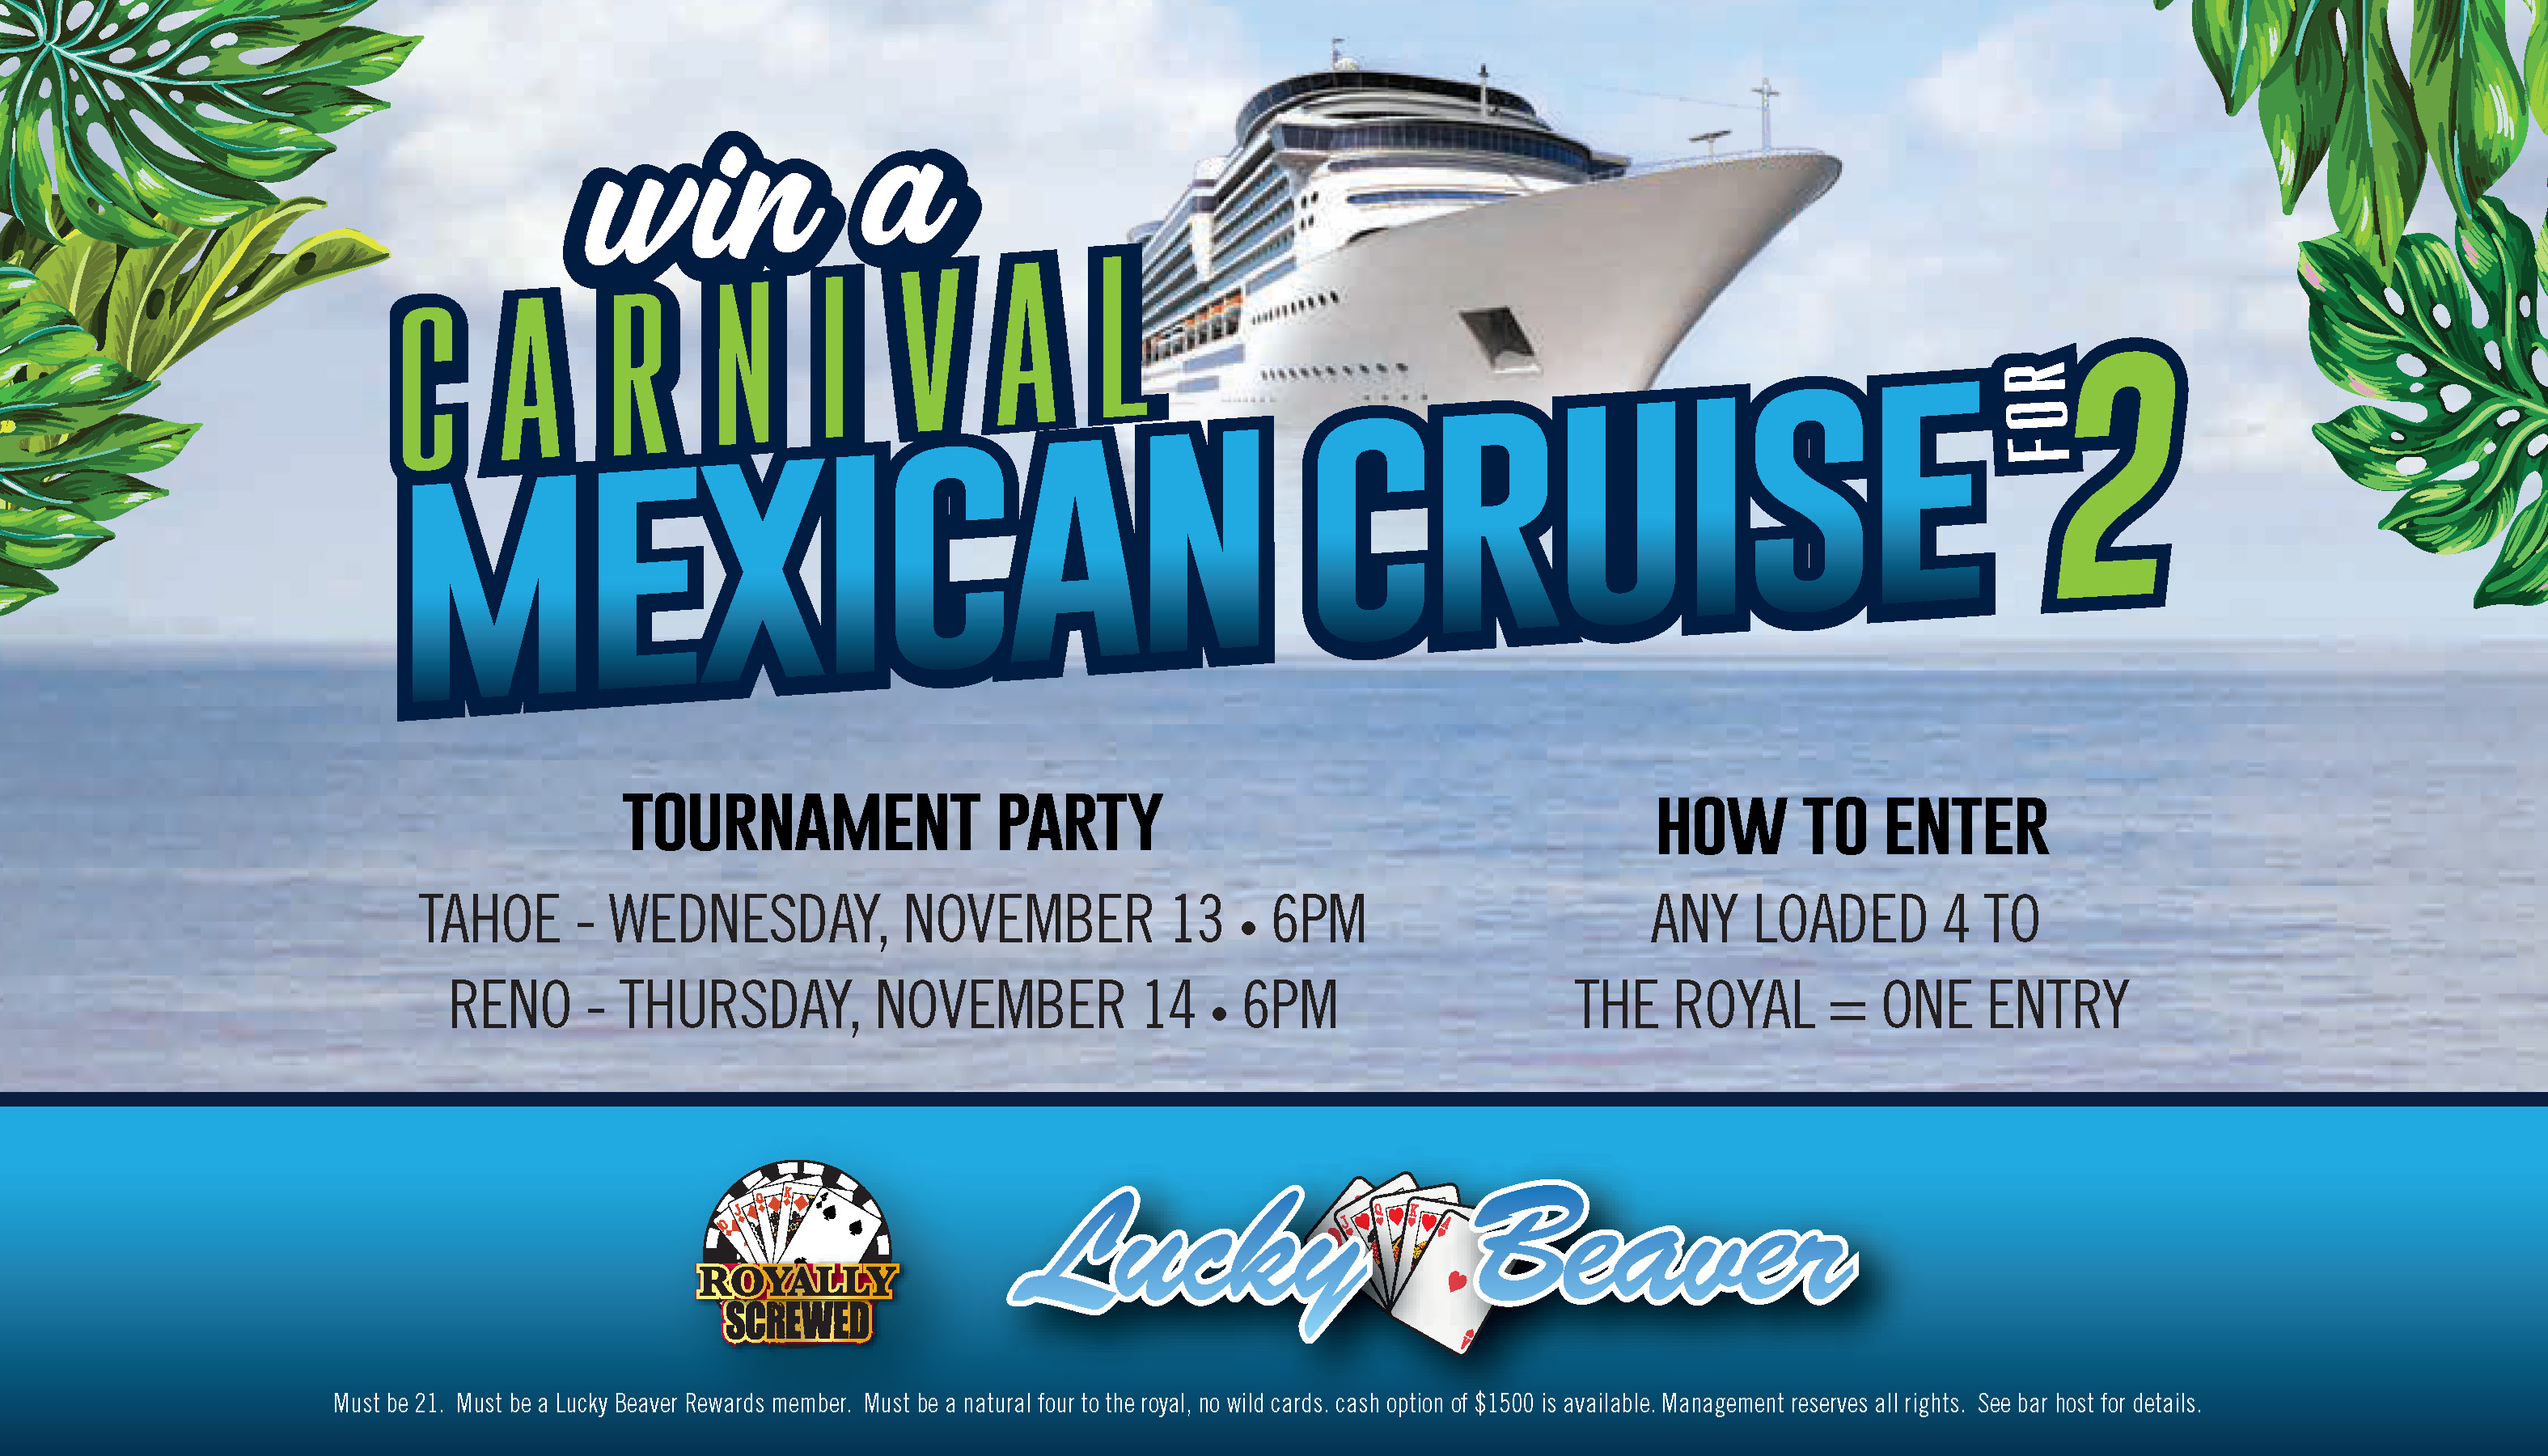 Win a Carnival Mexical Cruise for 2